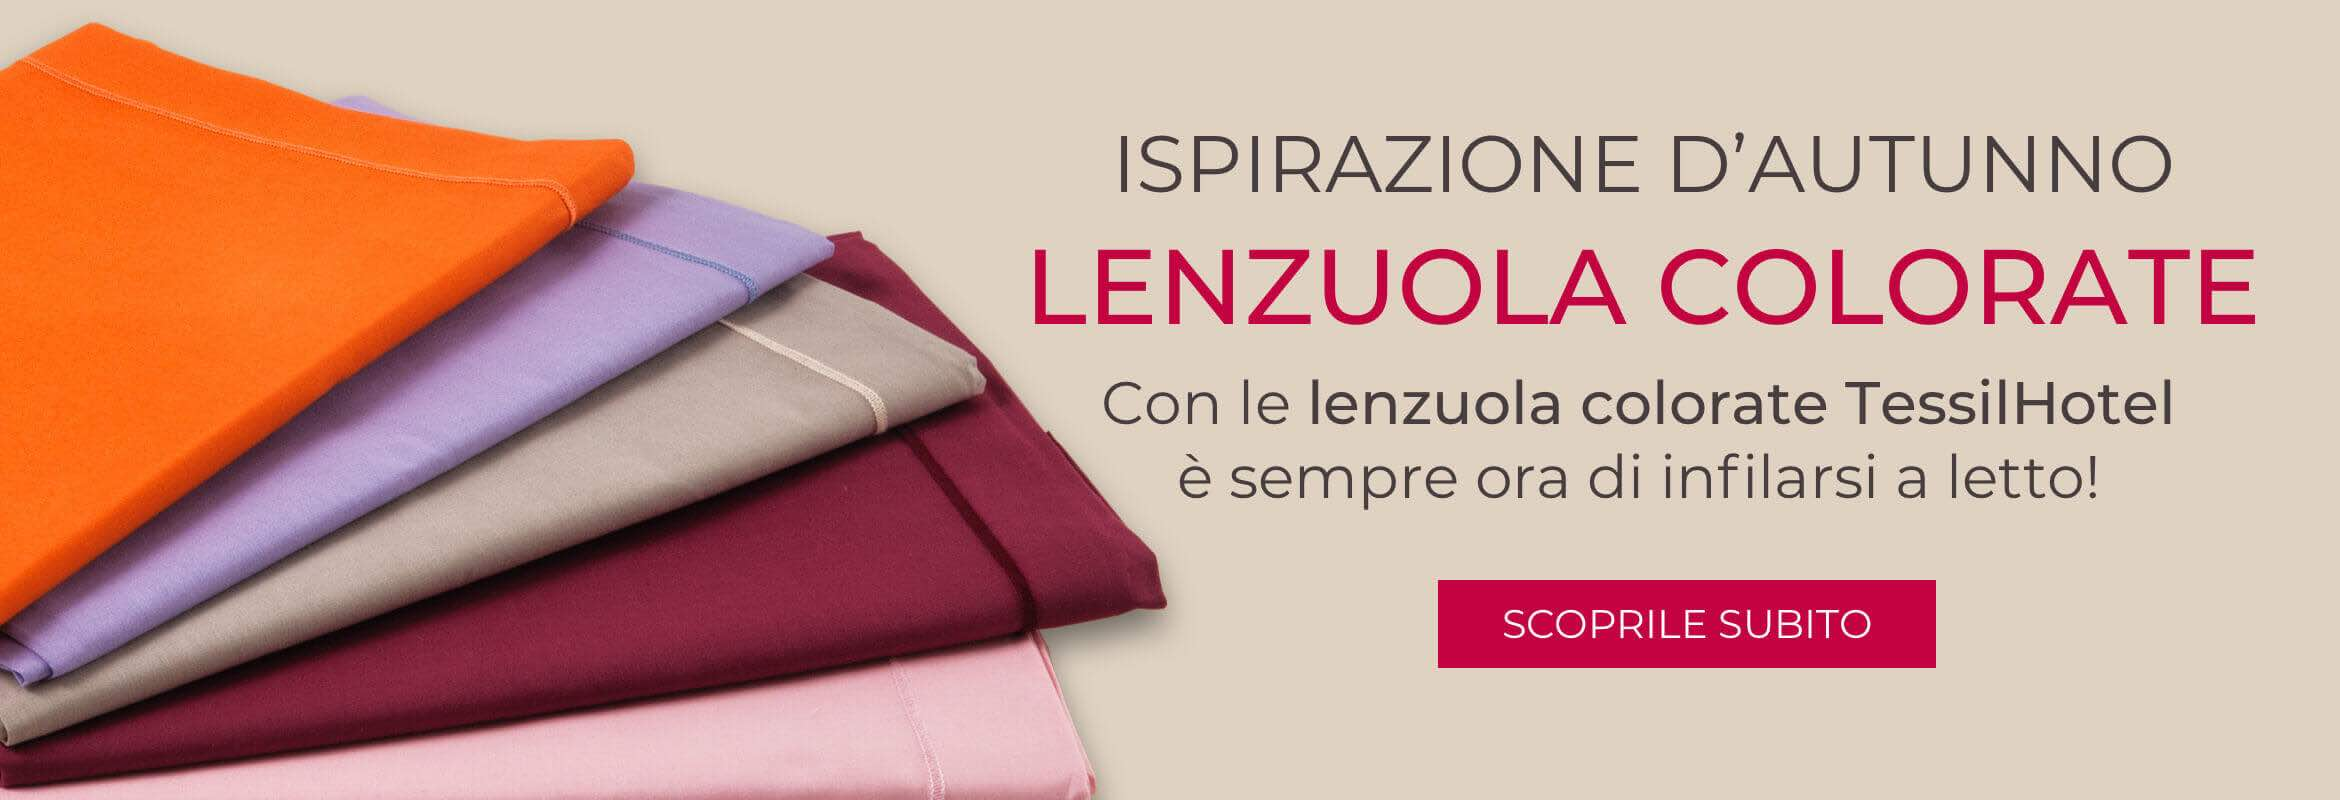 COLORA L'AUTUNNO CON LENZUOLA COLORATE